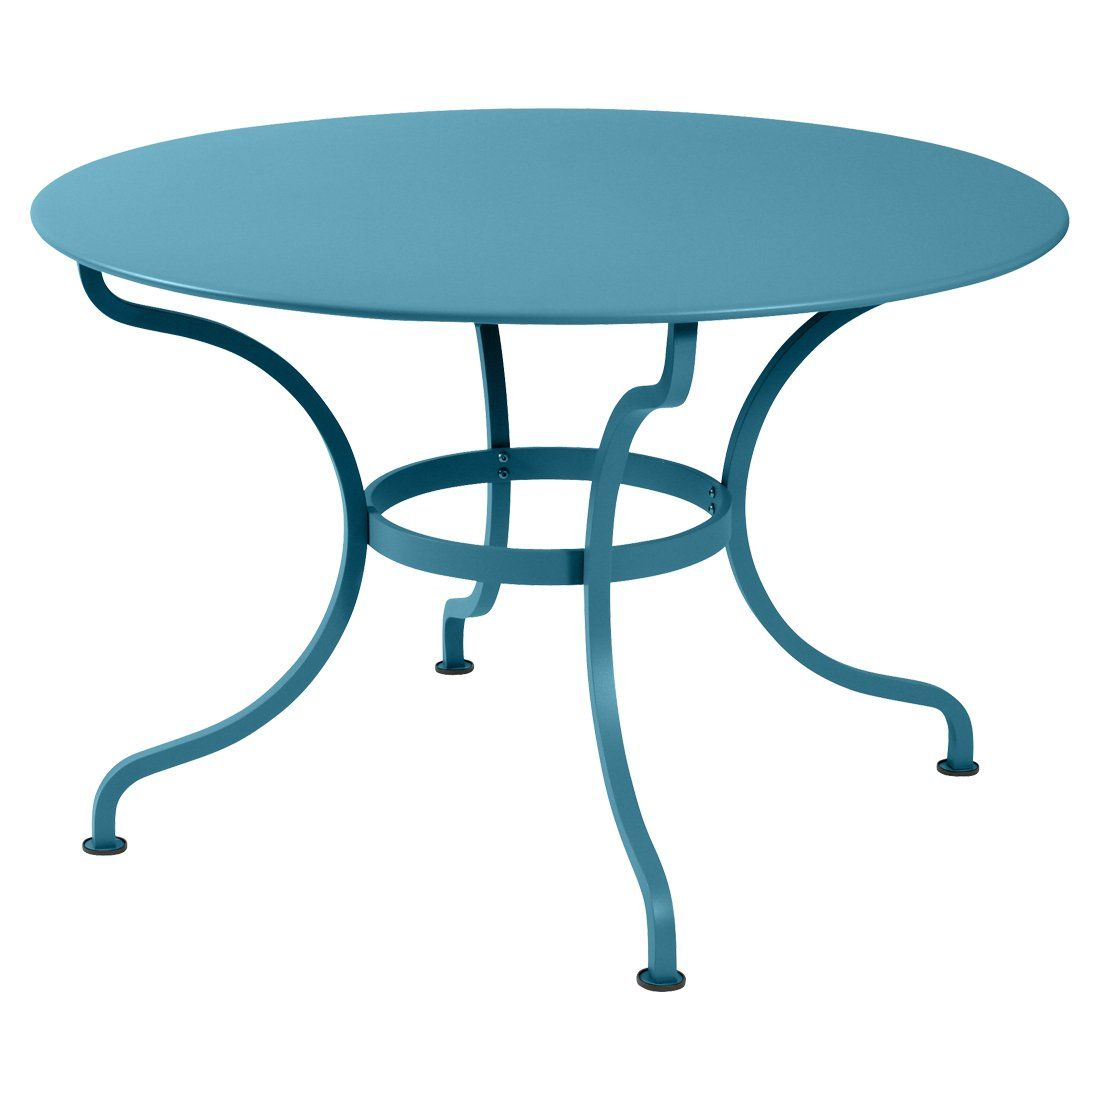 Gartenmöbel Fermob Fermob Romane Table 46 Products Outdoor Furniture Table